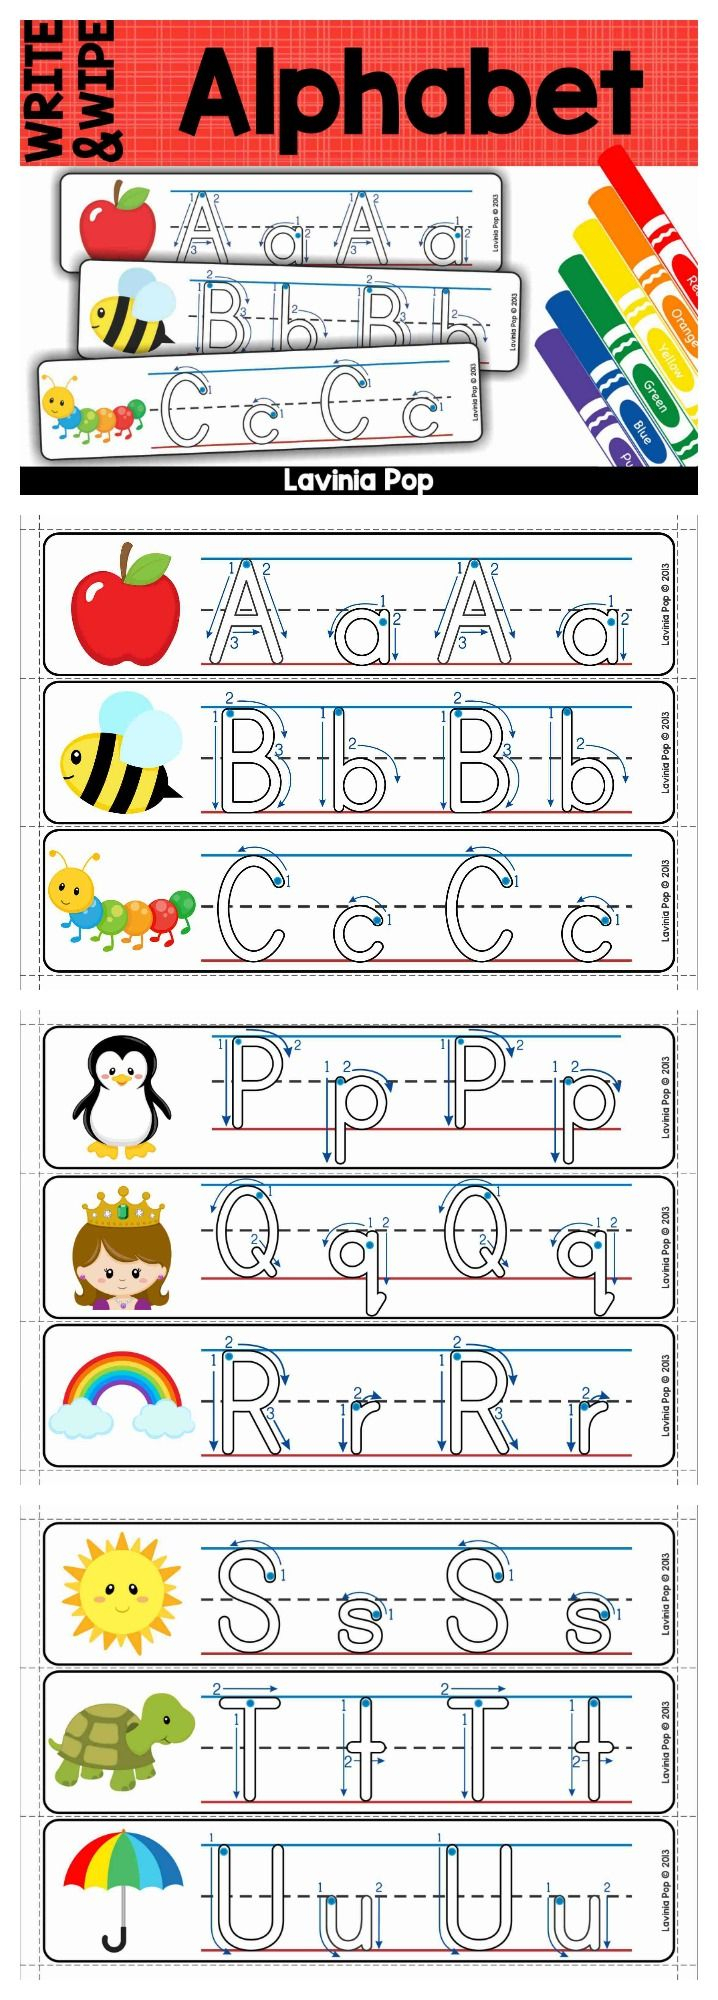 Alphabet Write And Wipe With Correct Letter Formation for Letter Tracing Directional Arrows